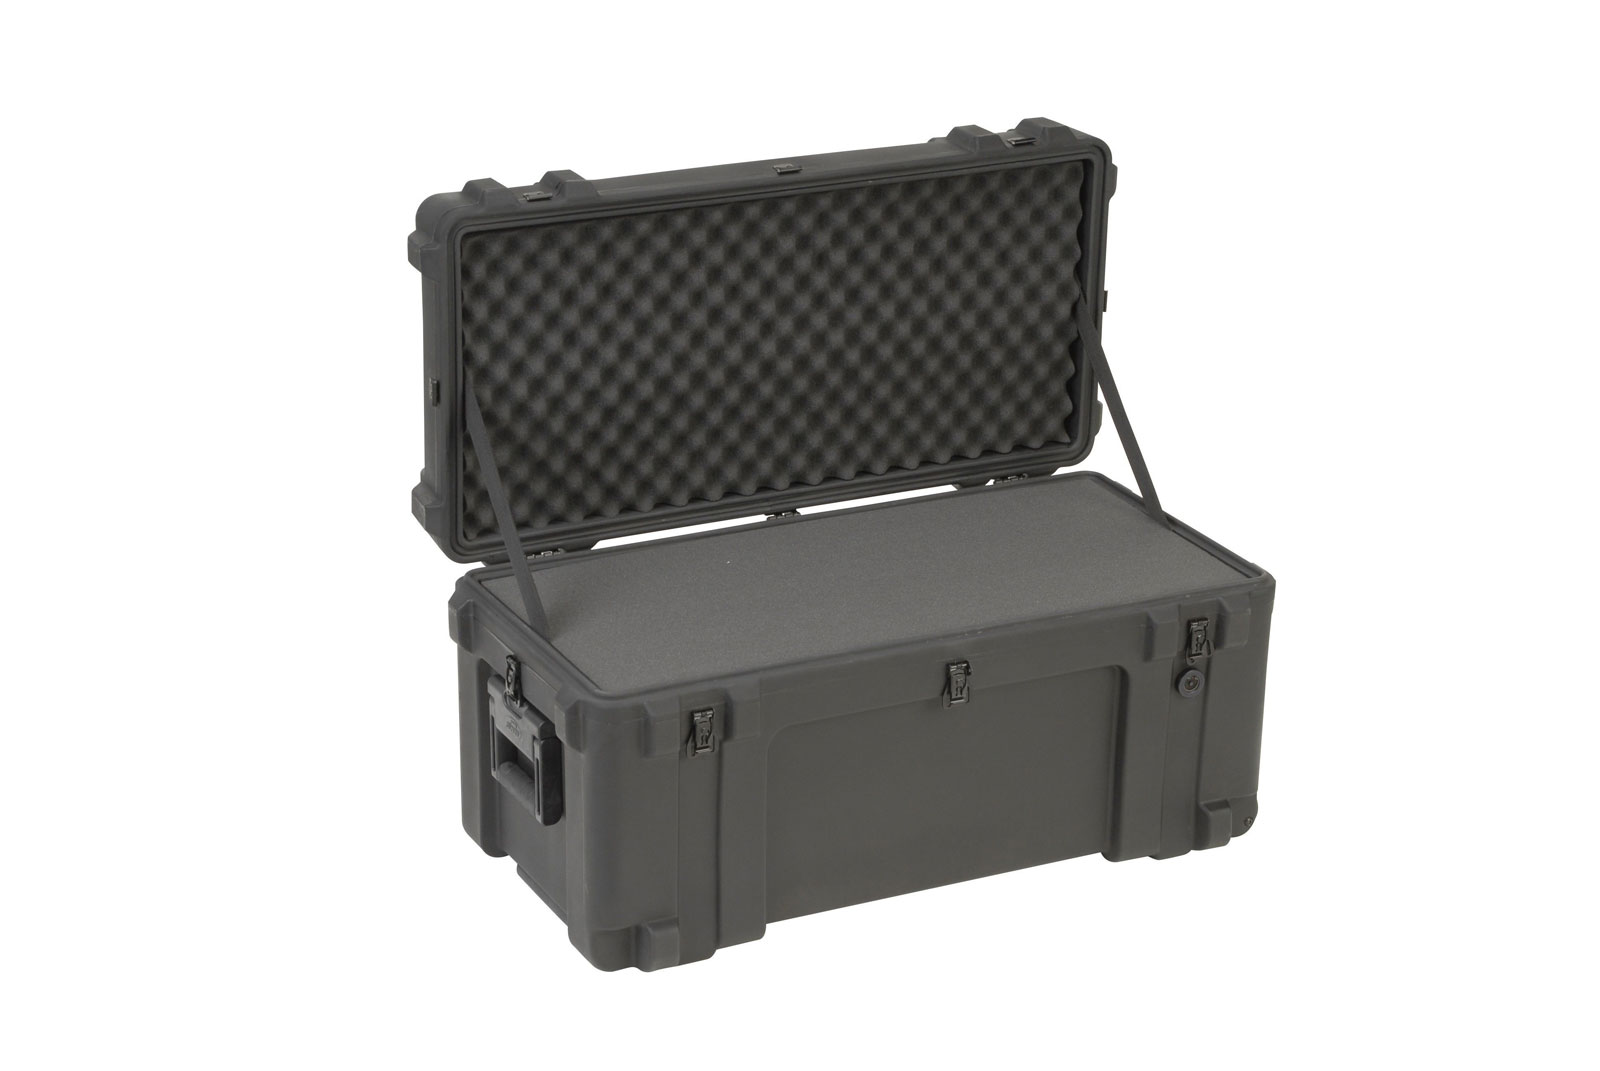 3R3214-15B-CW - UNIVERSAL WATERPROOF ROTO-MOLDED CASE 812 X 368 X 400 (318+83) MM WITH FOAM & WHE